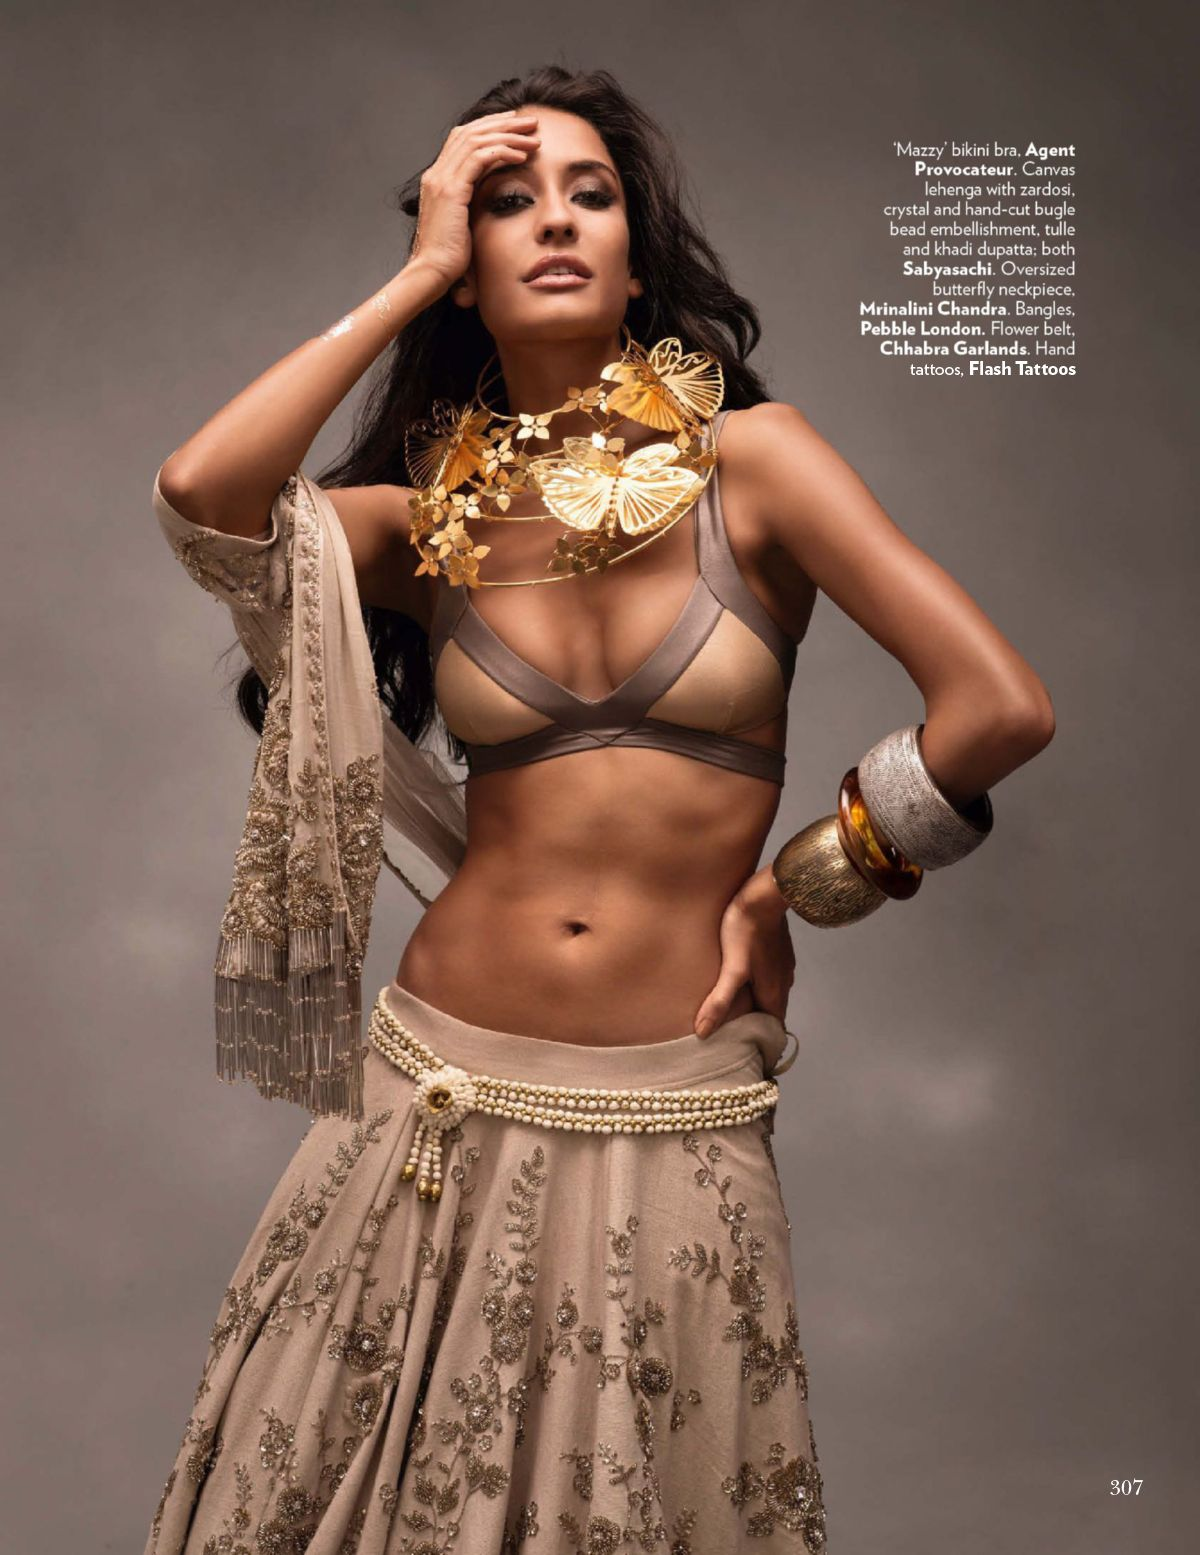 vogue india november 2014 | lisa haydon, dayana erappa + more